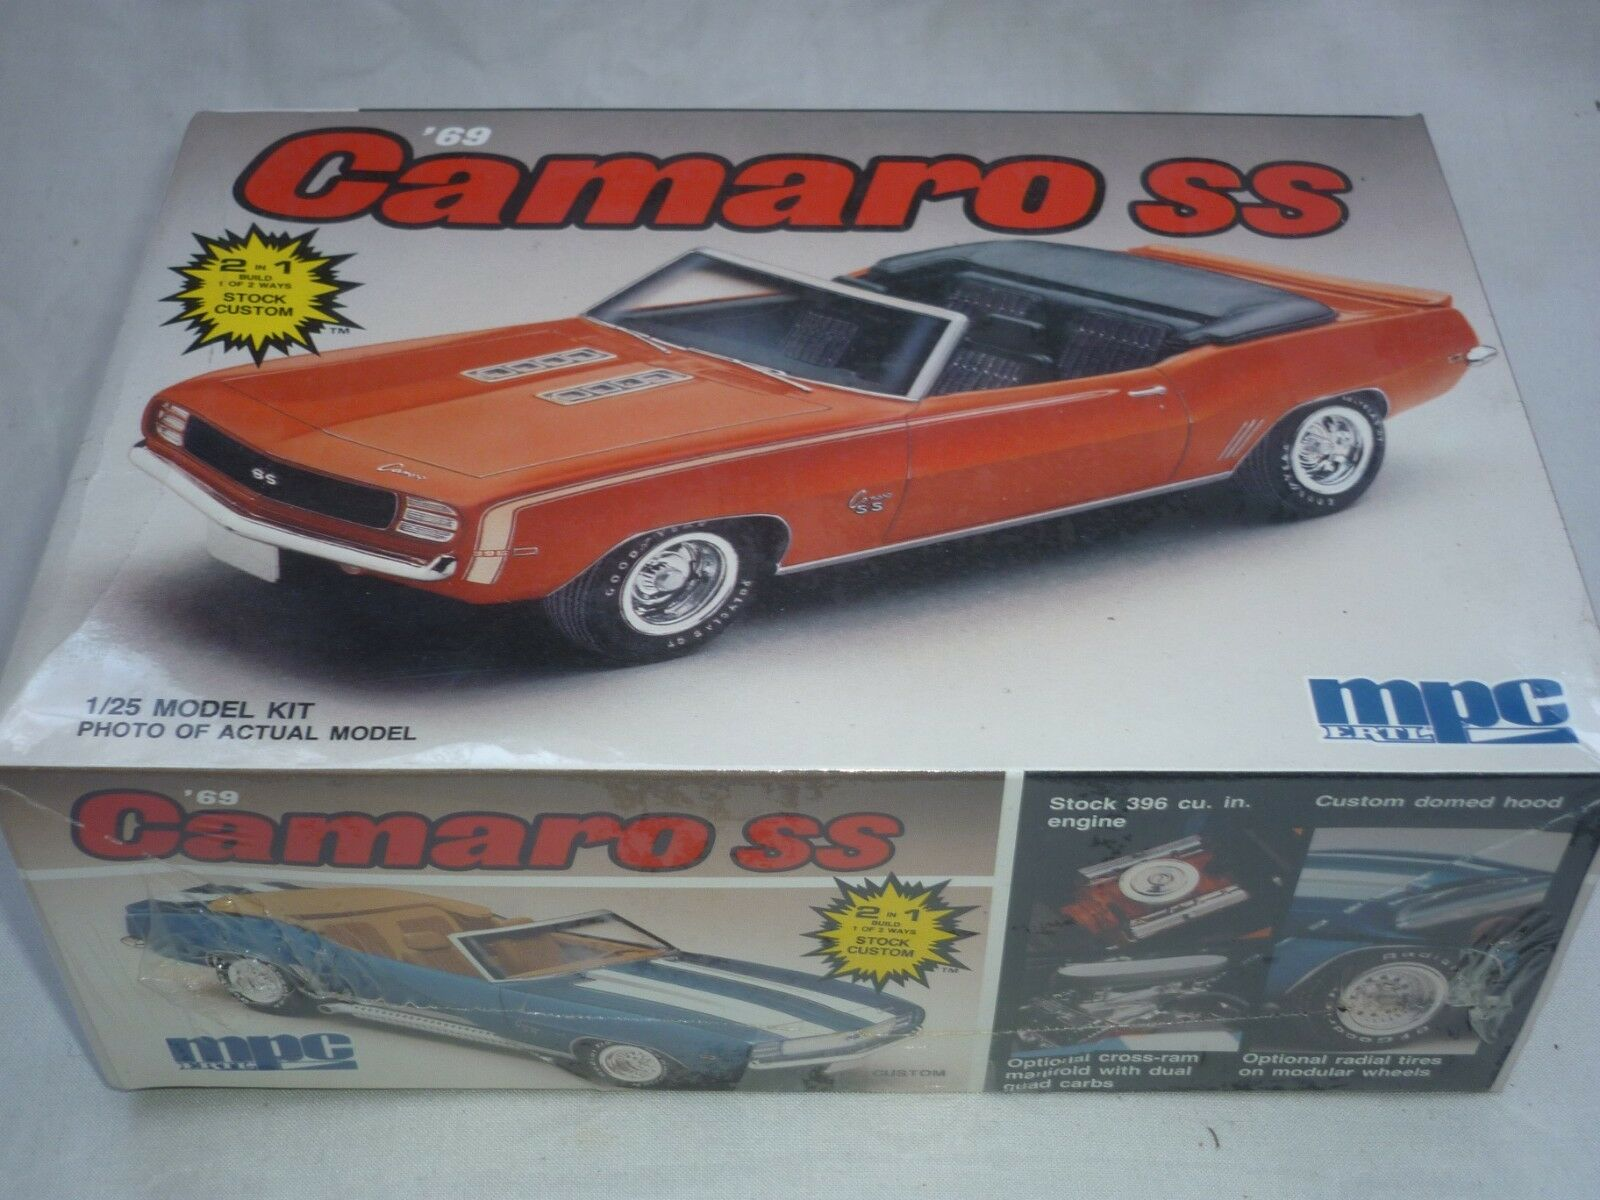 MPC   Ertl un opened plastic kit of a 1969 Camaro SS,  factory sealed